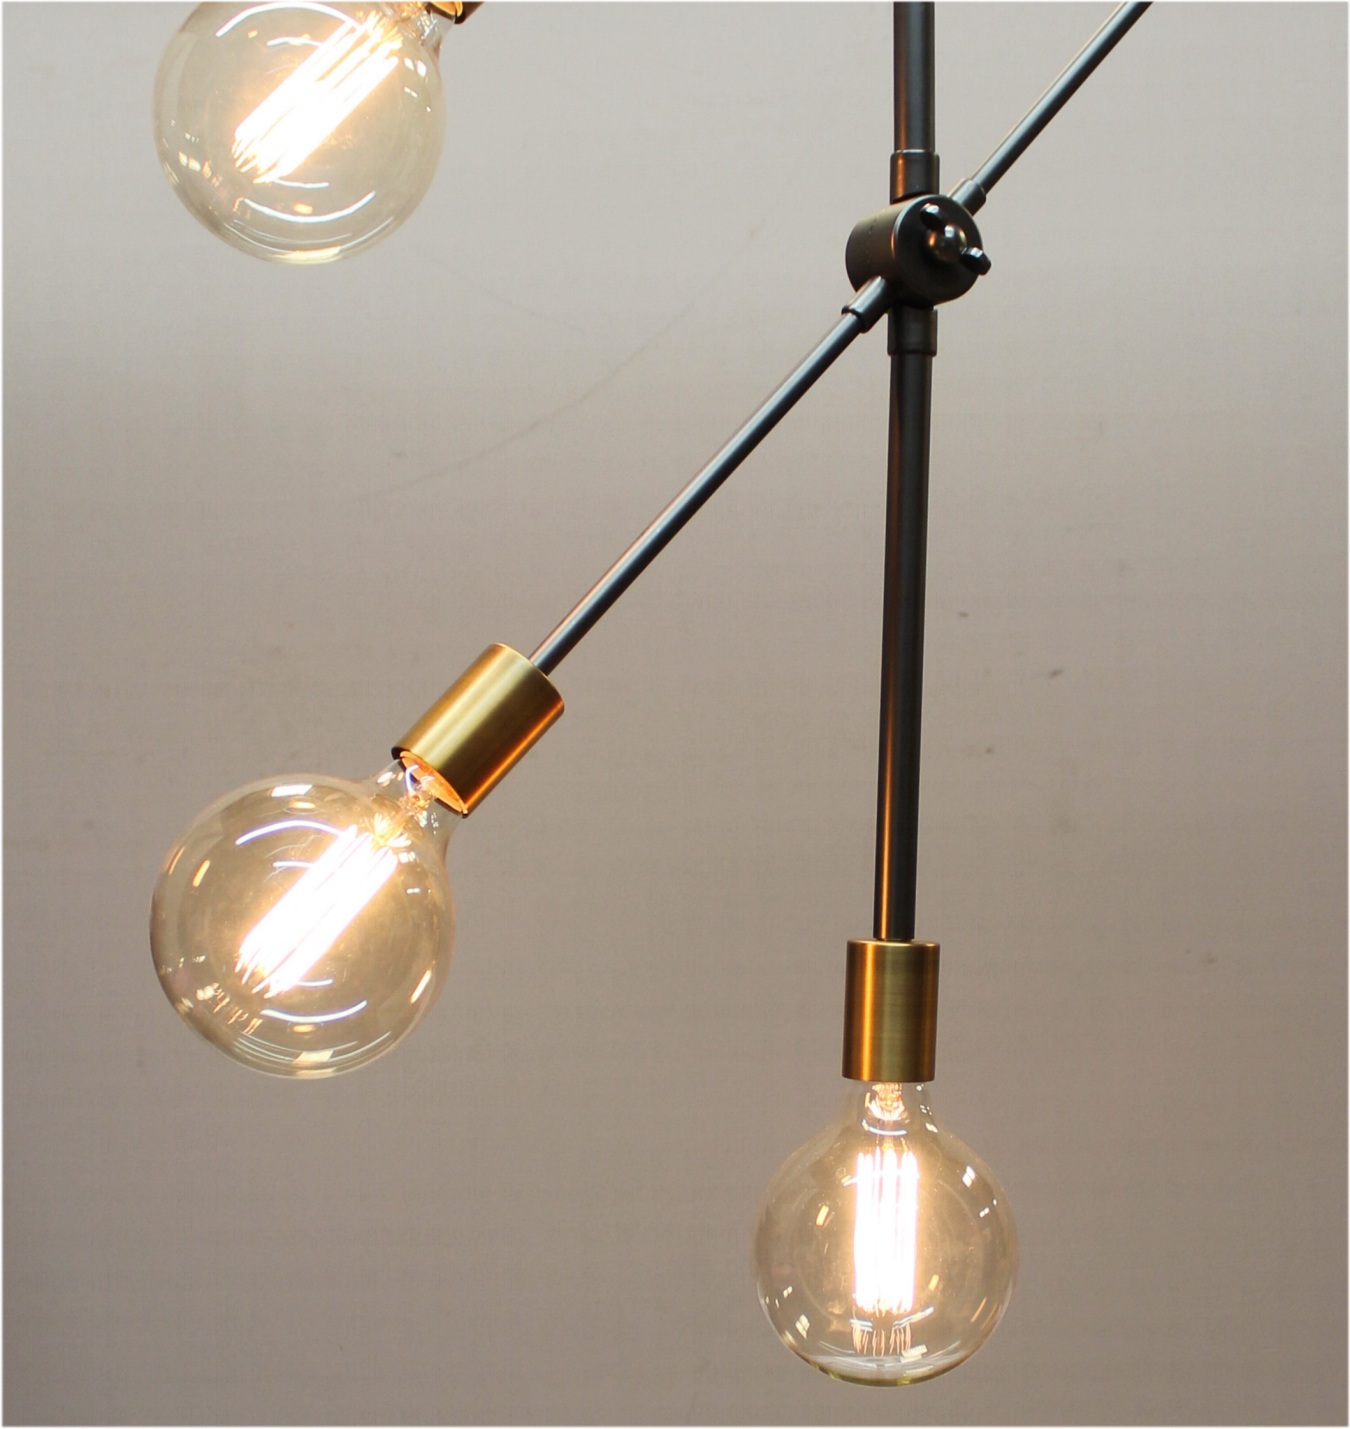 Contemporary Five Arm Pendant Chandelier Mid Century Modern Danish Euro Swivel Arms Light Fixture